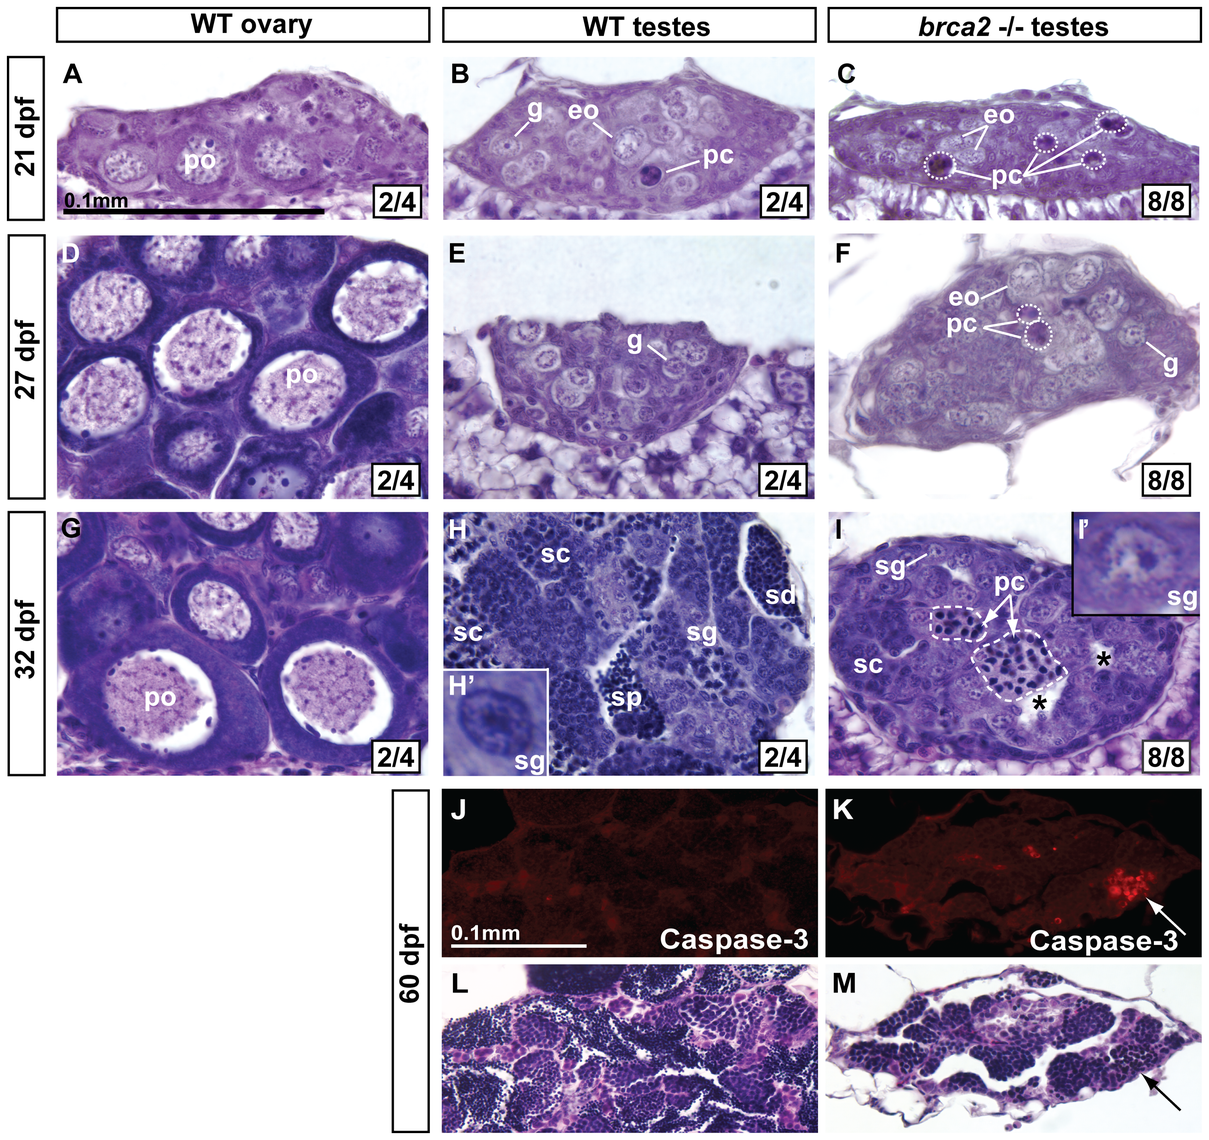 Developing gonads of <i>brca2</i> mutants lack perinucleolar oocytes and develop testes that contain pyknotic and apoptotic cells.